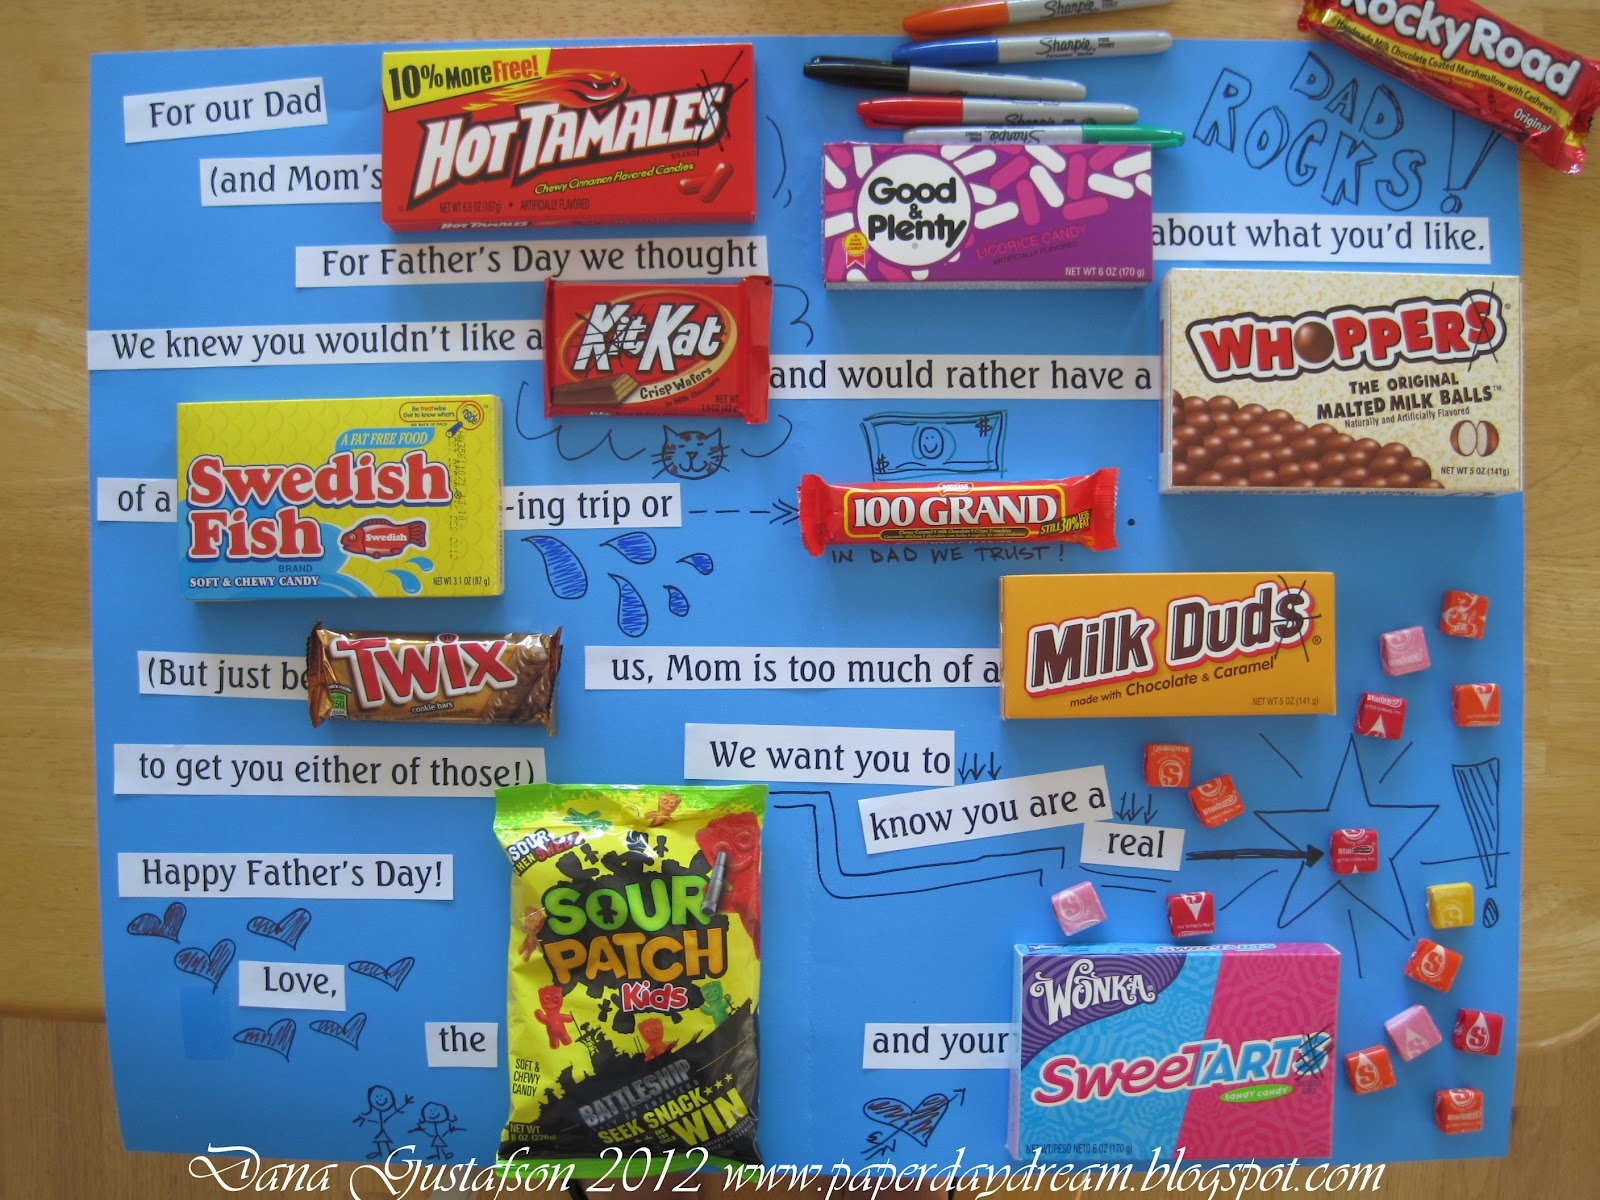 How To Make A Candy Gram Cardperfect For Dad. 1600 x 1200.Valentine's Day Pictures For Husband